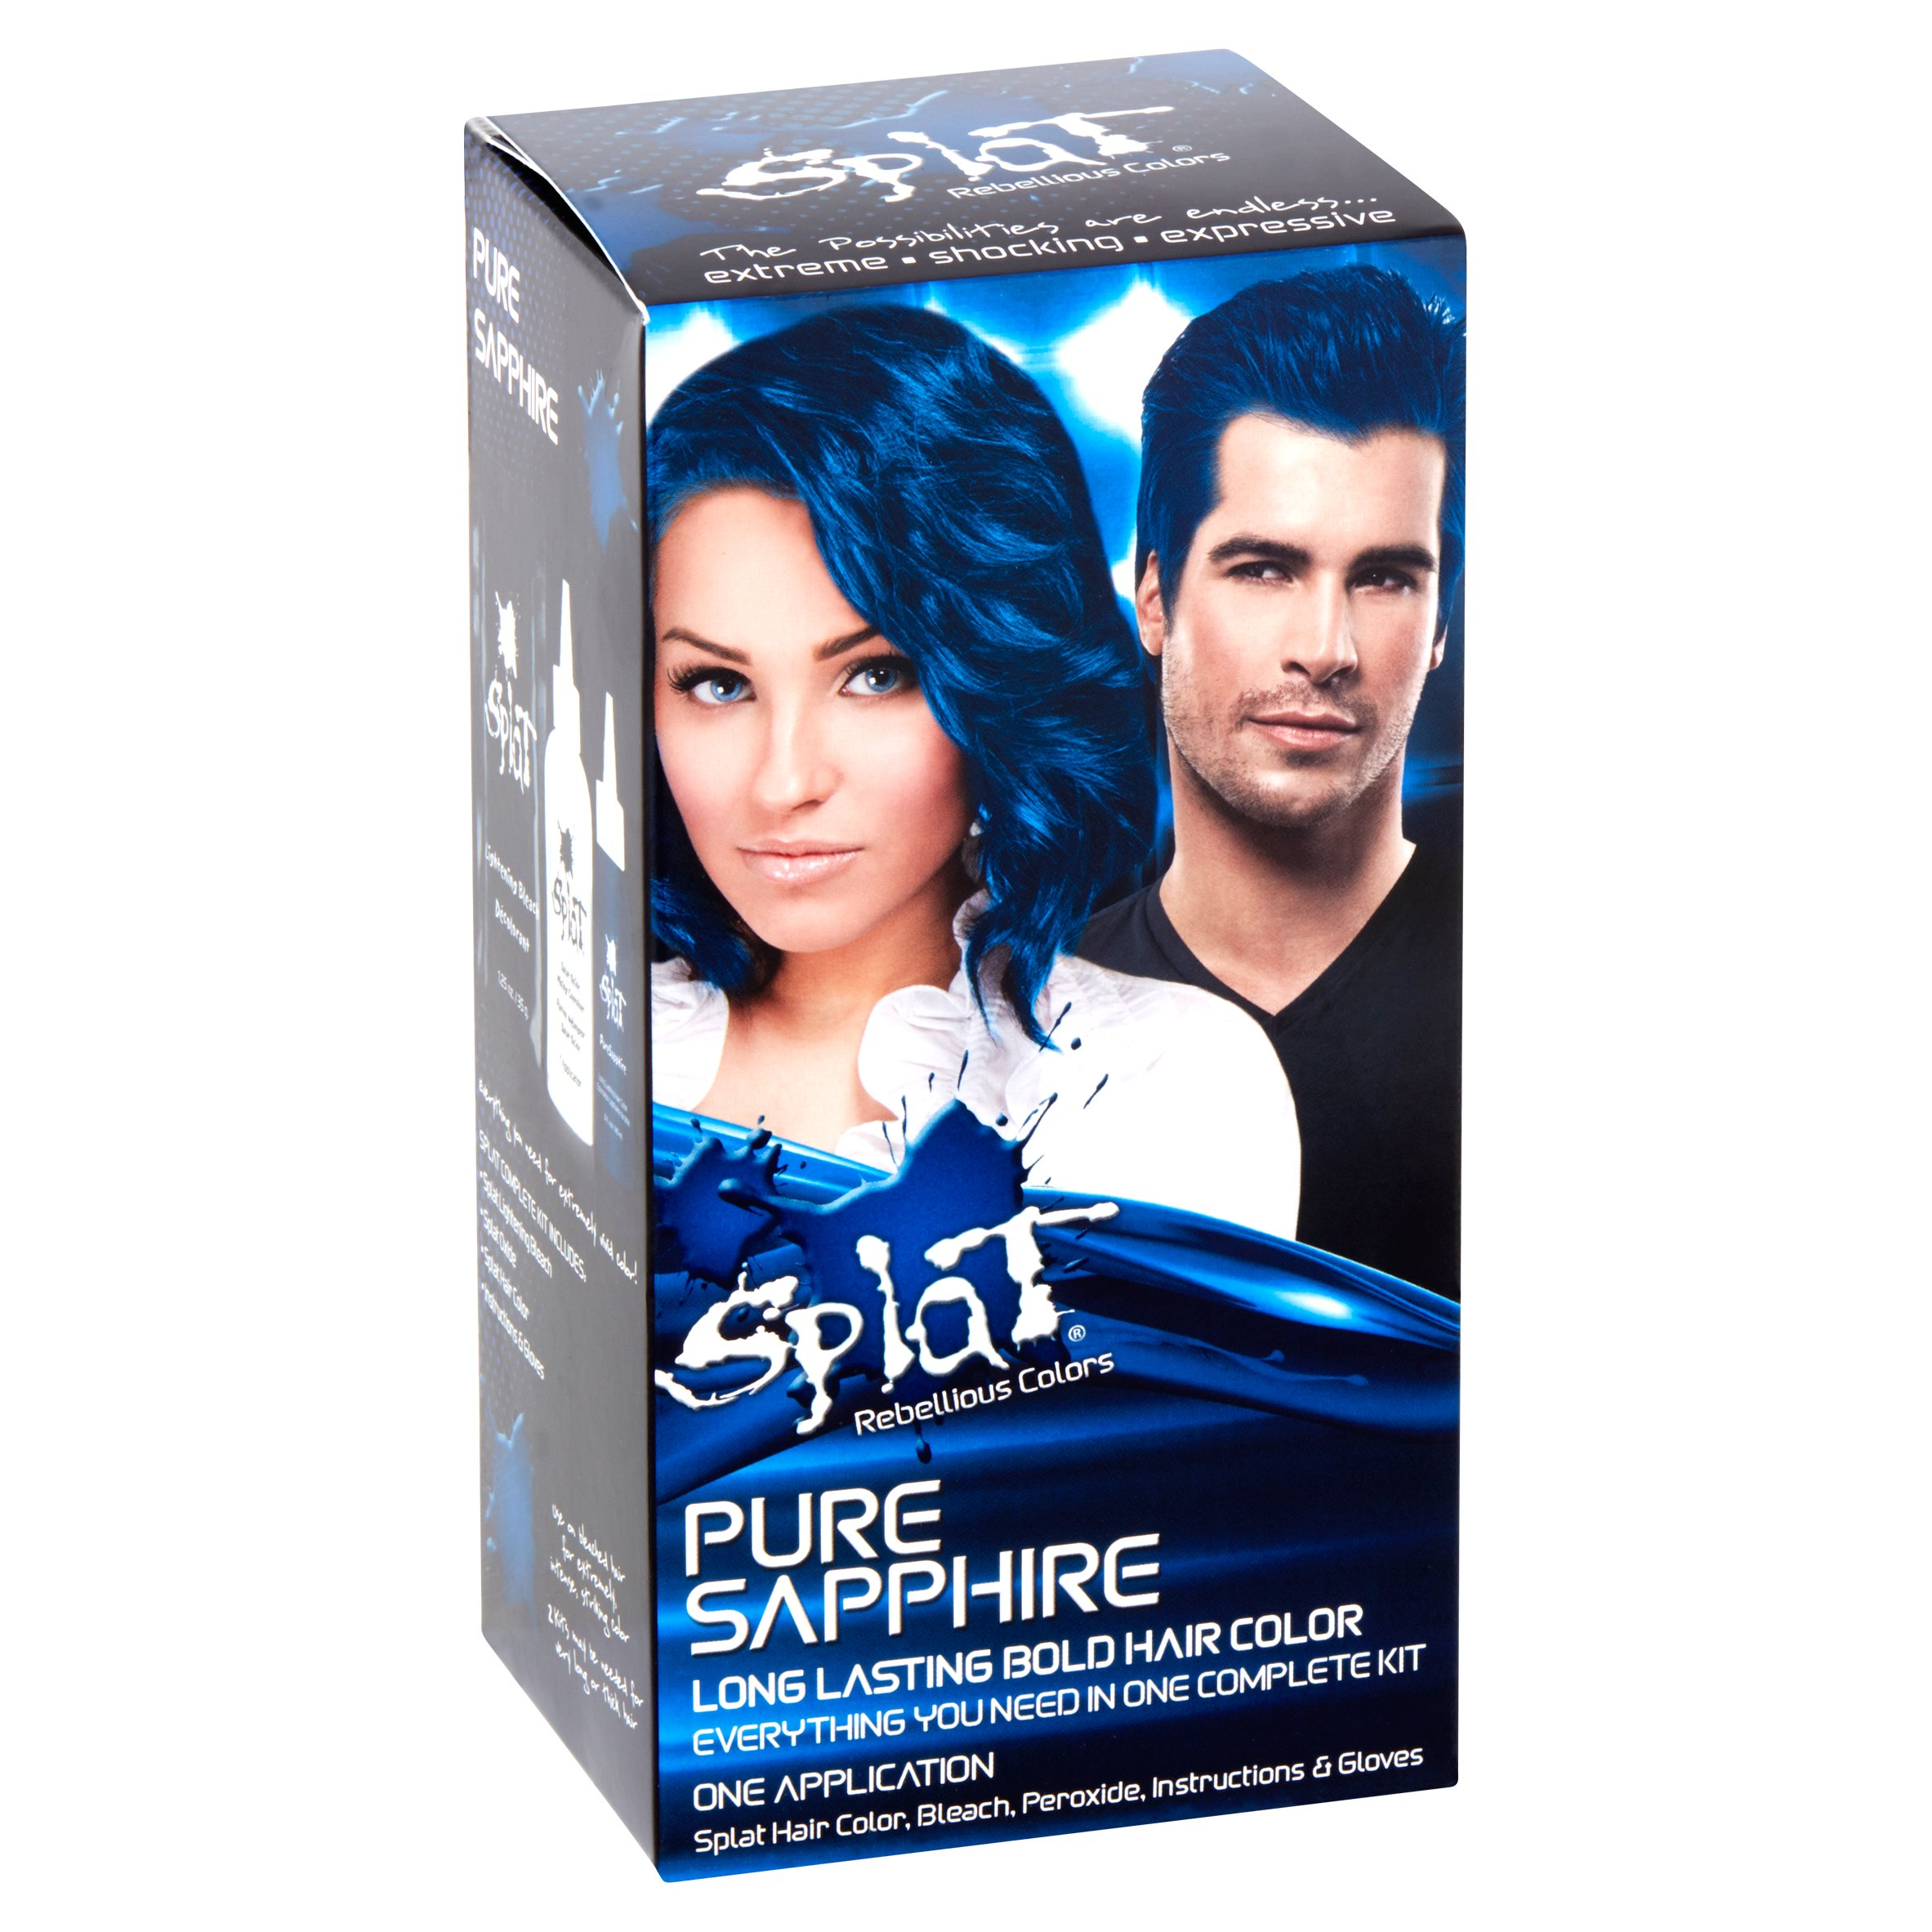 Splat 30 Wash Semi Permanent Hair Dye Kit Pure Sapphire Blue Color